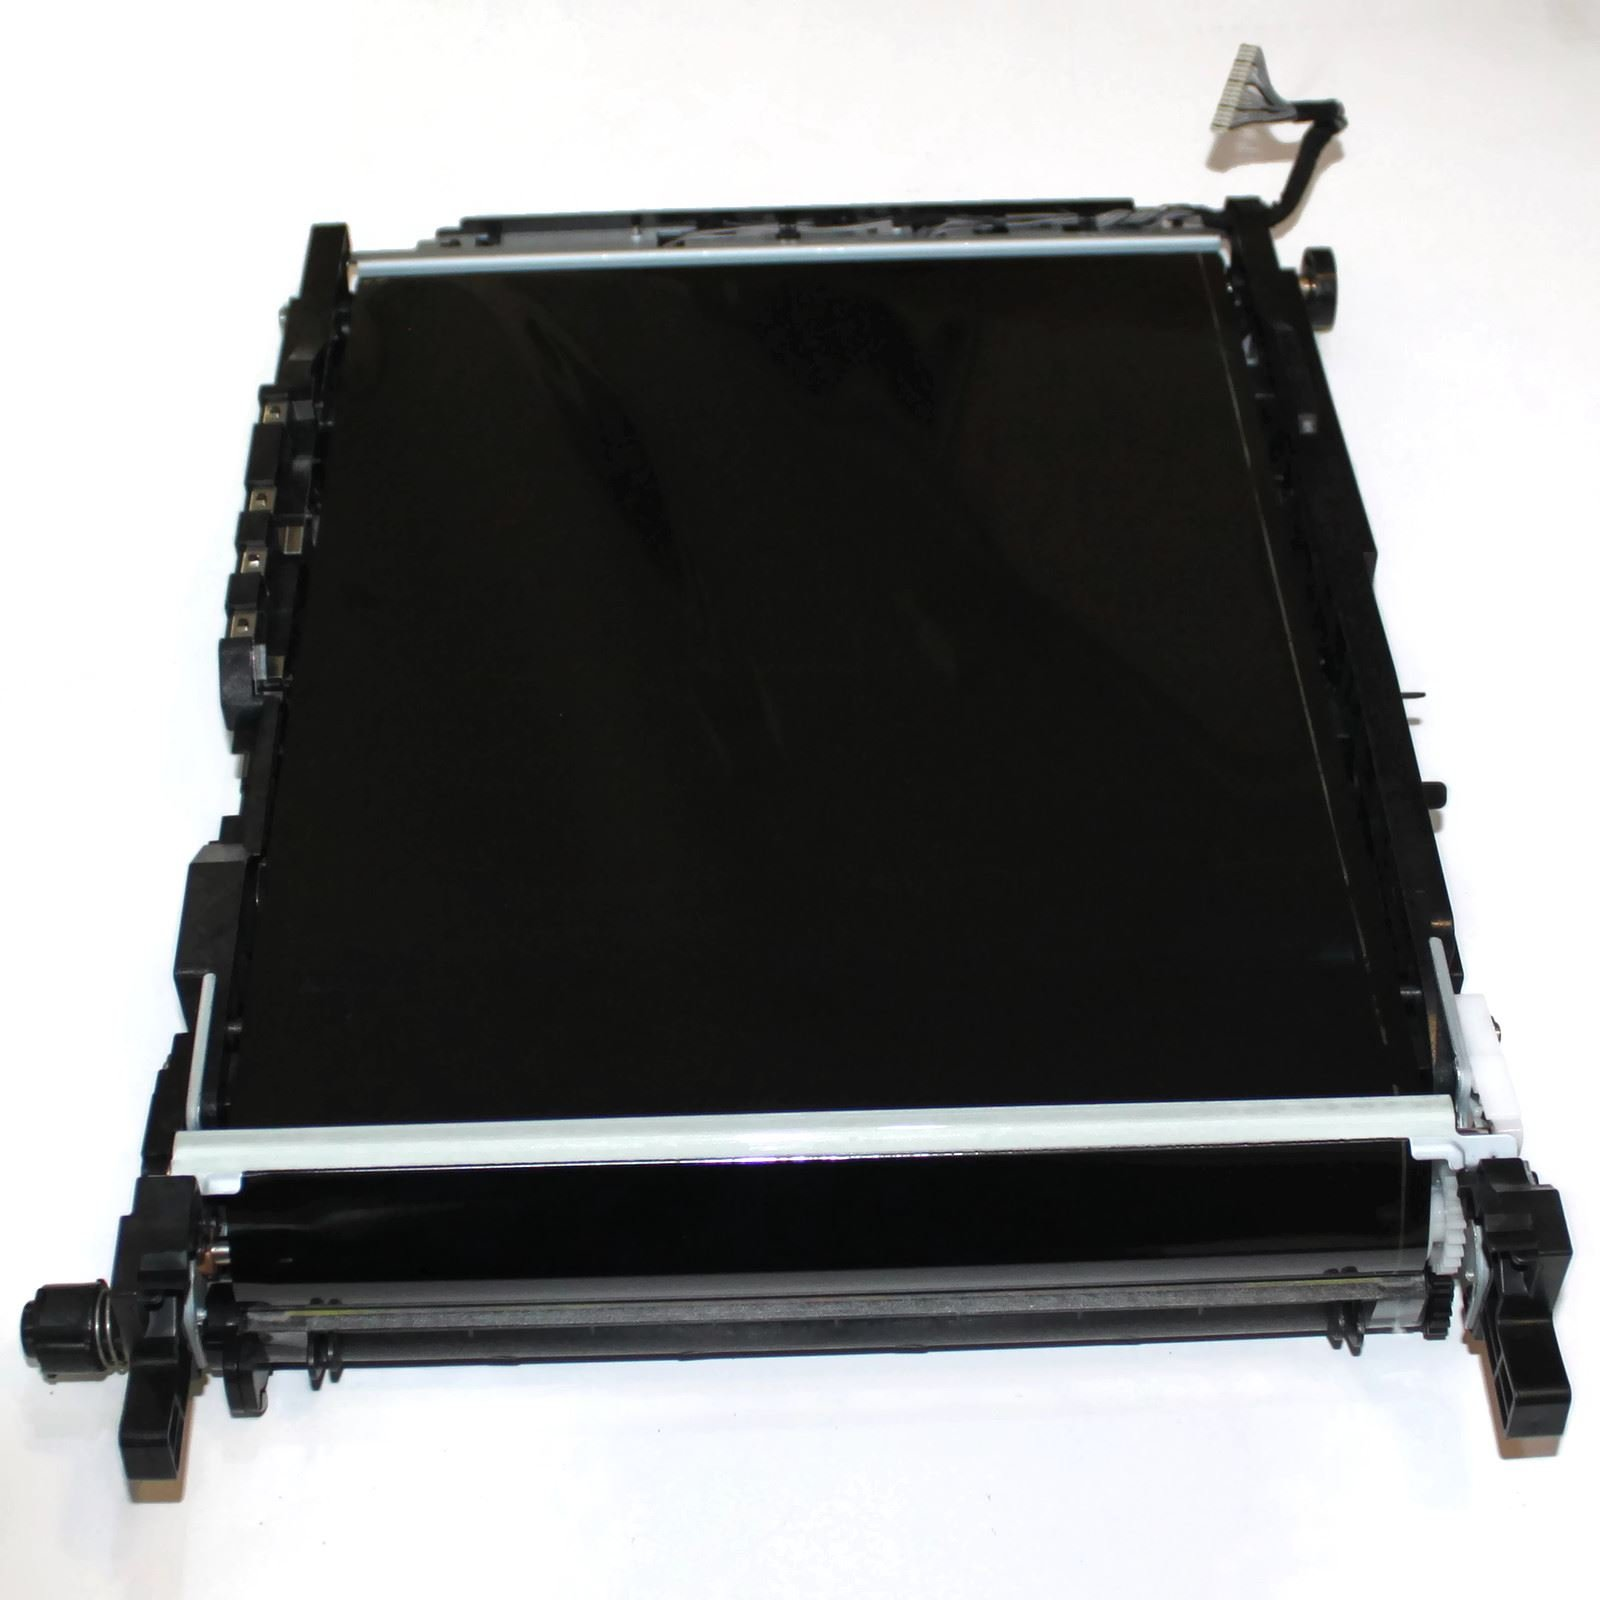 Remanufactured Transfer Belt Unit for Samsung CLP415N, CLP415NW, CLP680DW, CLP680ND, CLX4195FN, CLX4195FW, CLX4195N, CLX6260FD, CLX6260FR, CLX6260FW, CLX6260ND